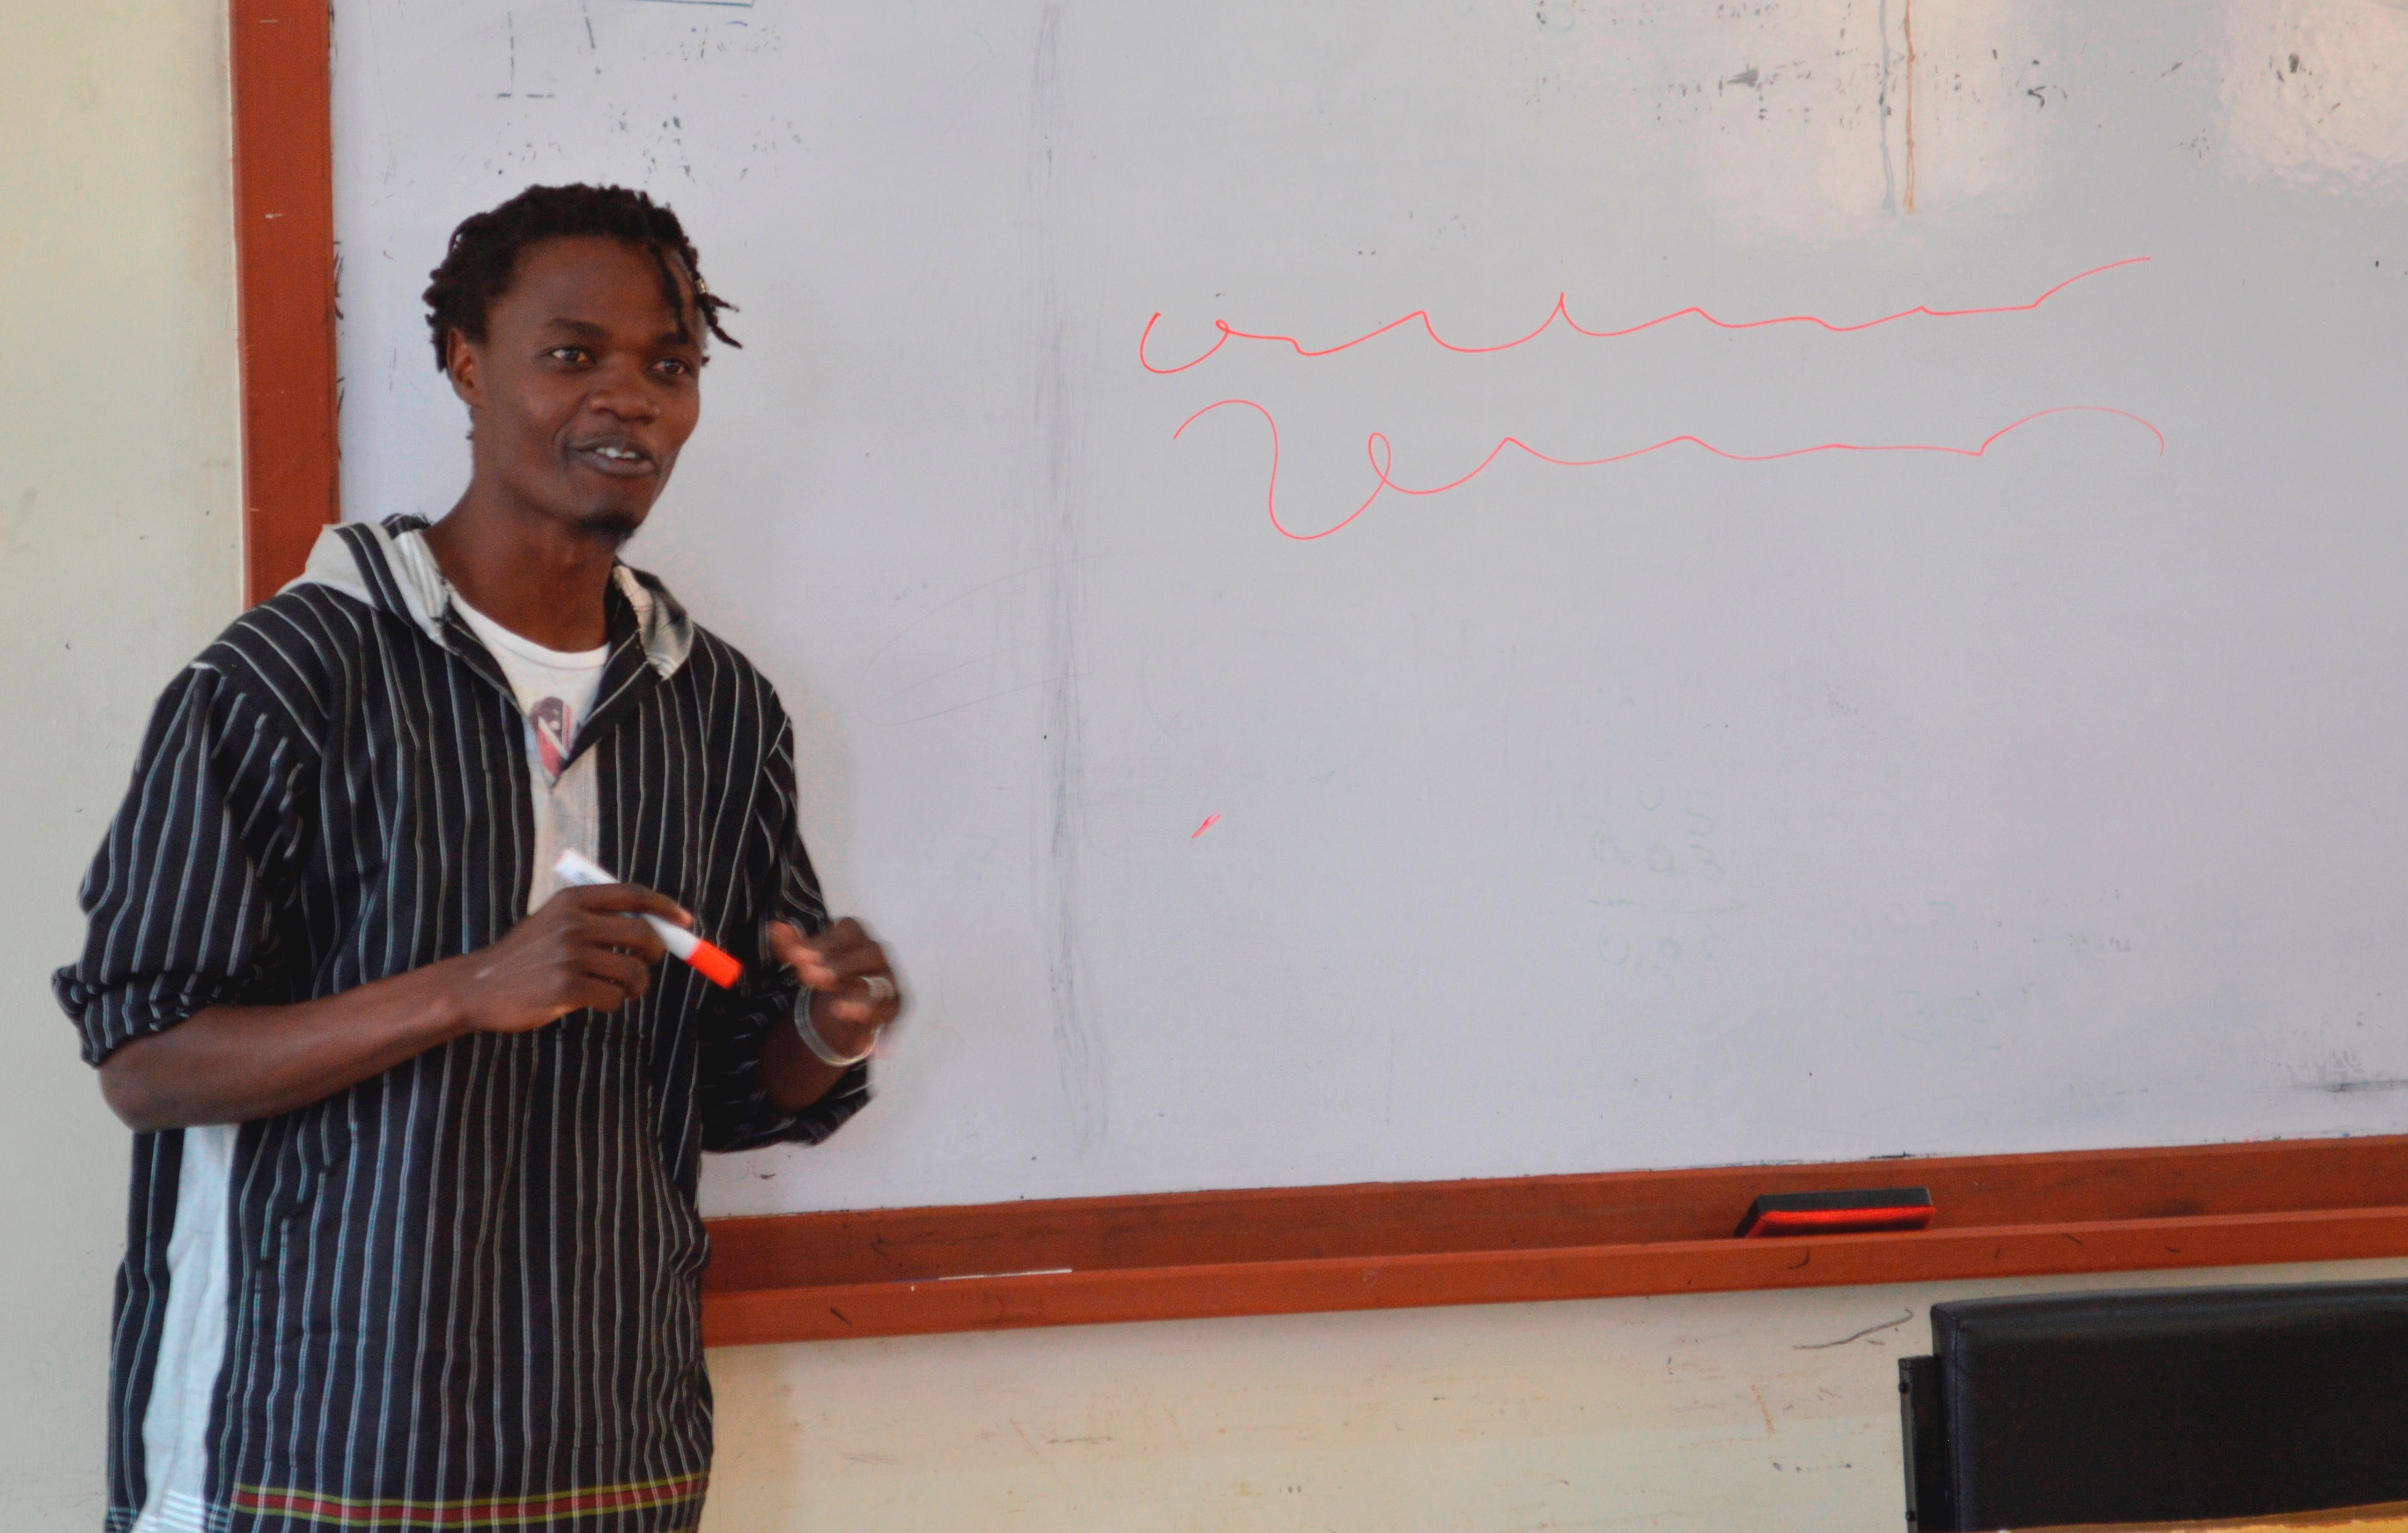 Juliani encourages artists to create art for social justice